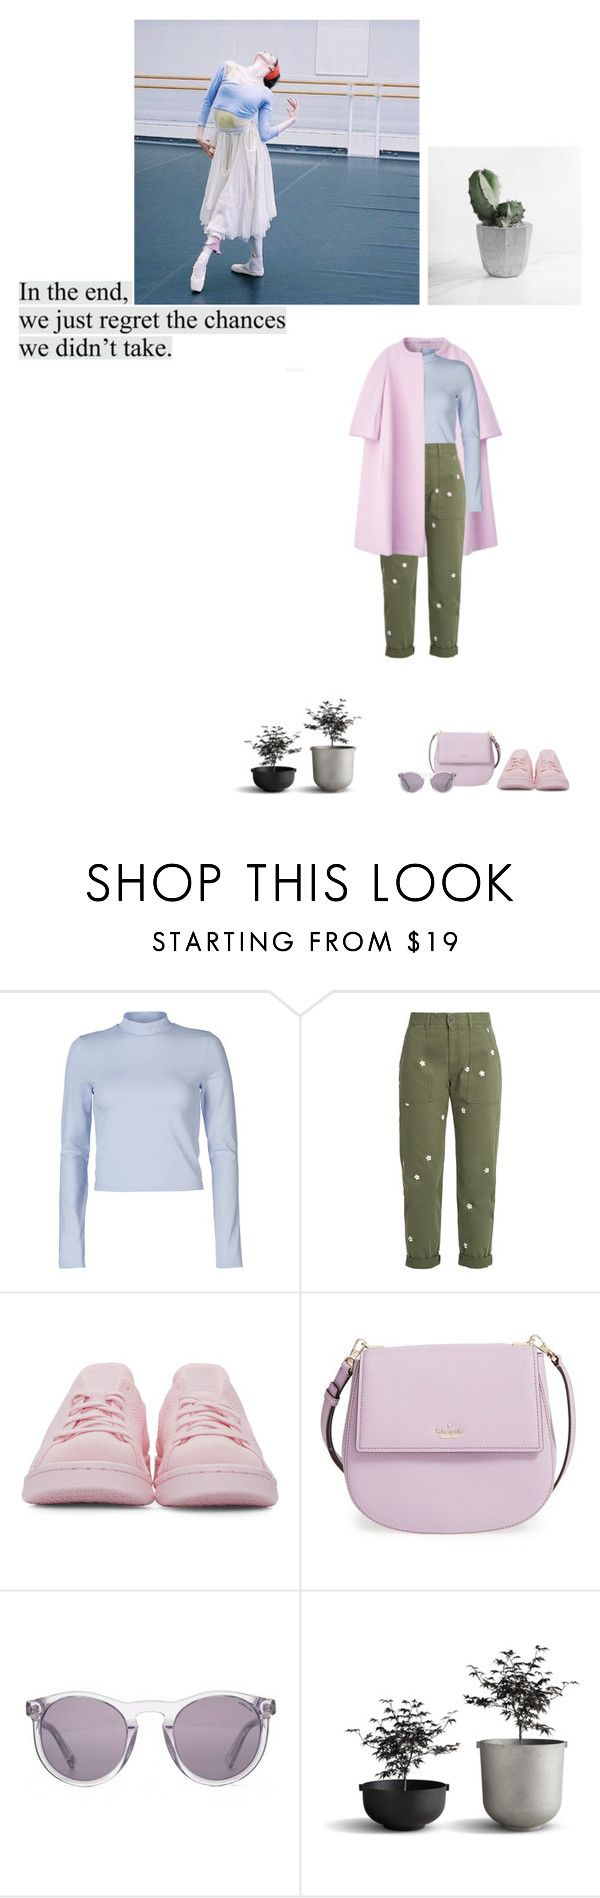 """Inspire"" by evidentia ❤ liked on Polyvore featuring Jil Sander, ONLY, STELLA McCARTNEY, adidas Originals, Kate Spade, HOOK LDN, pastels and clearsunglasses"